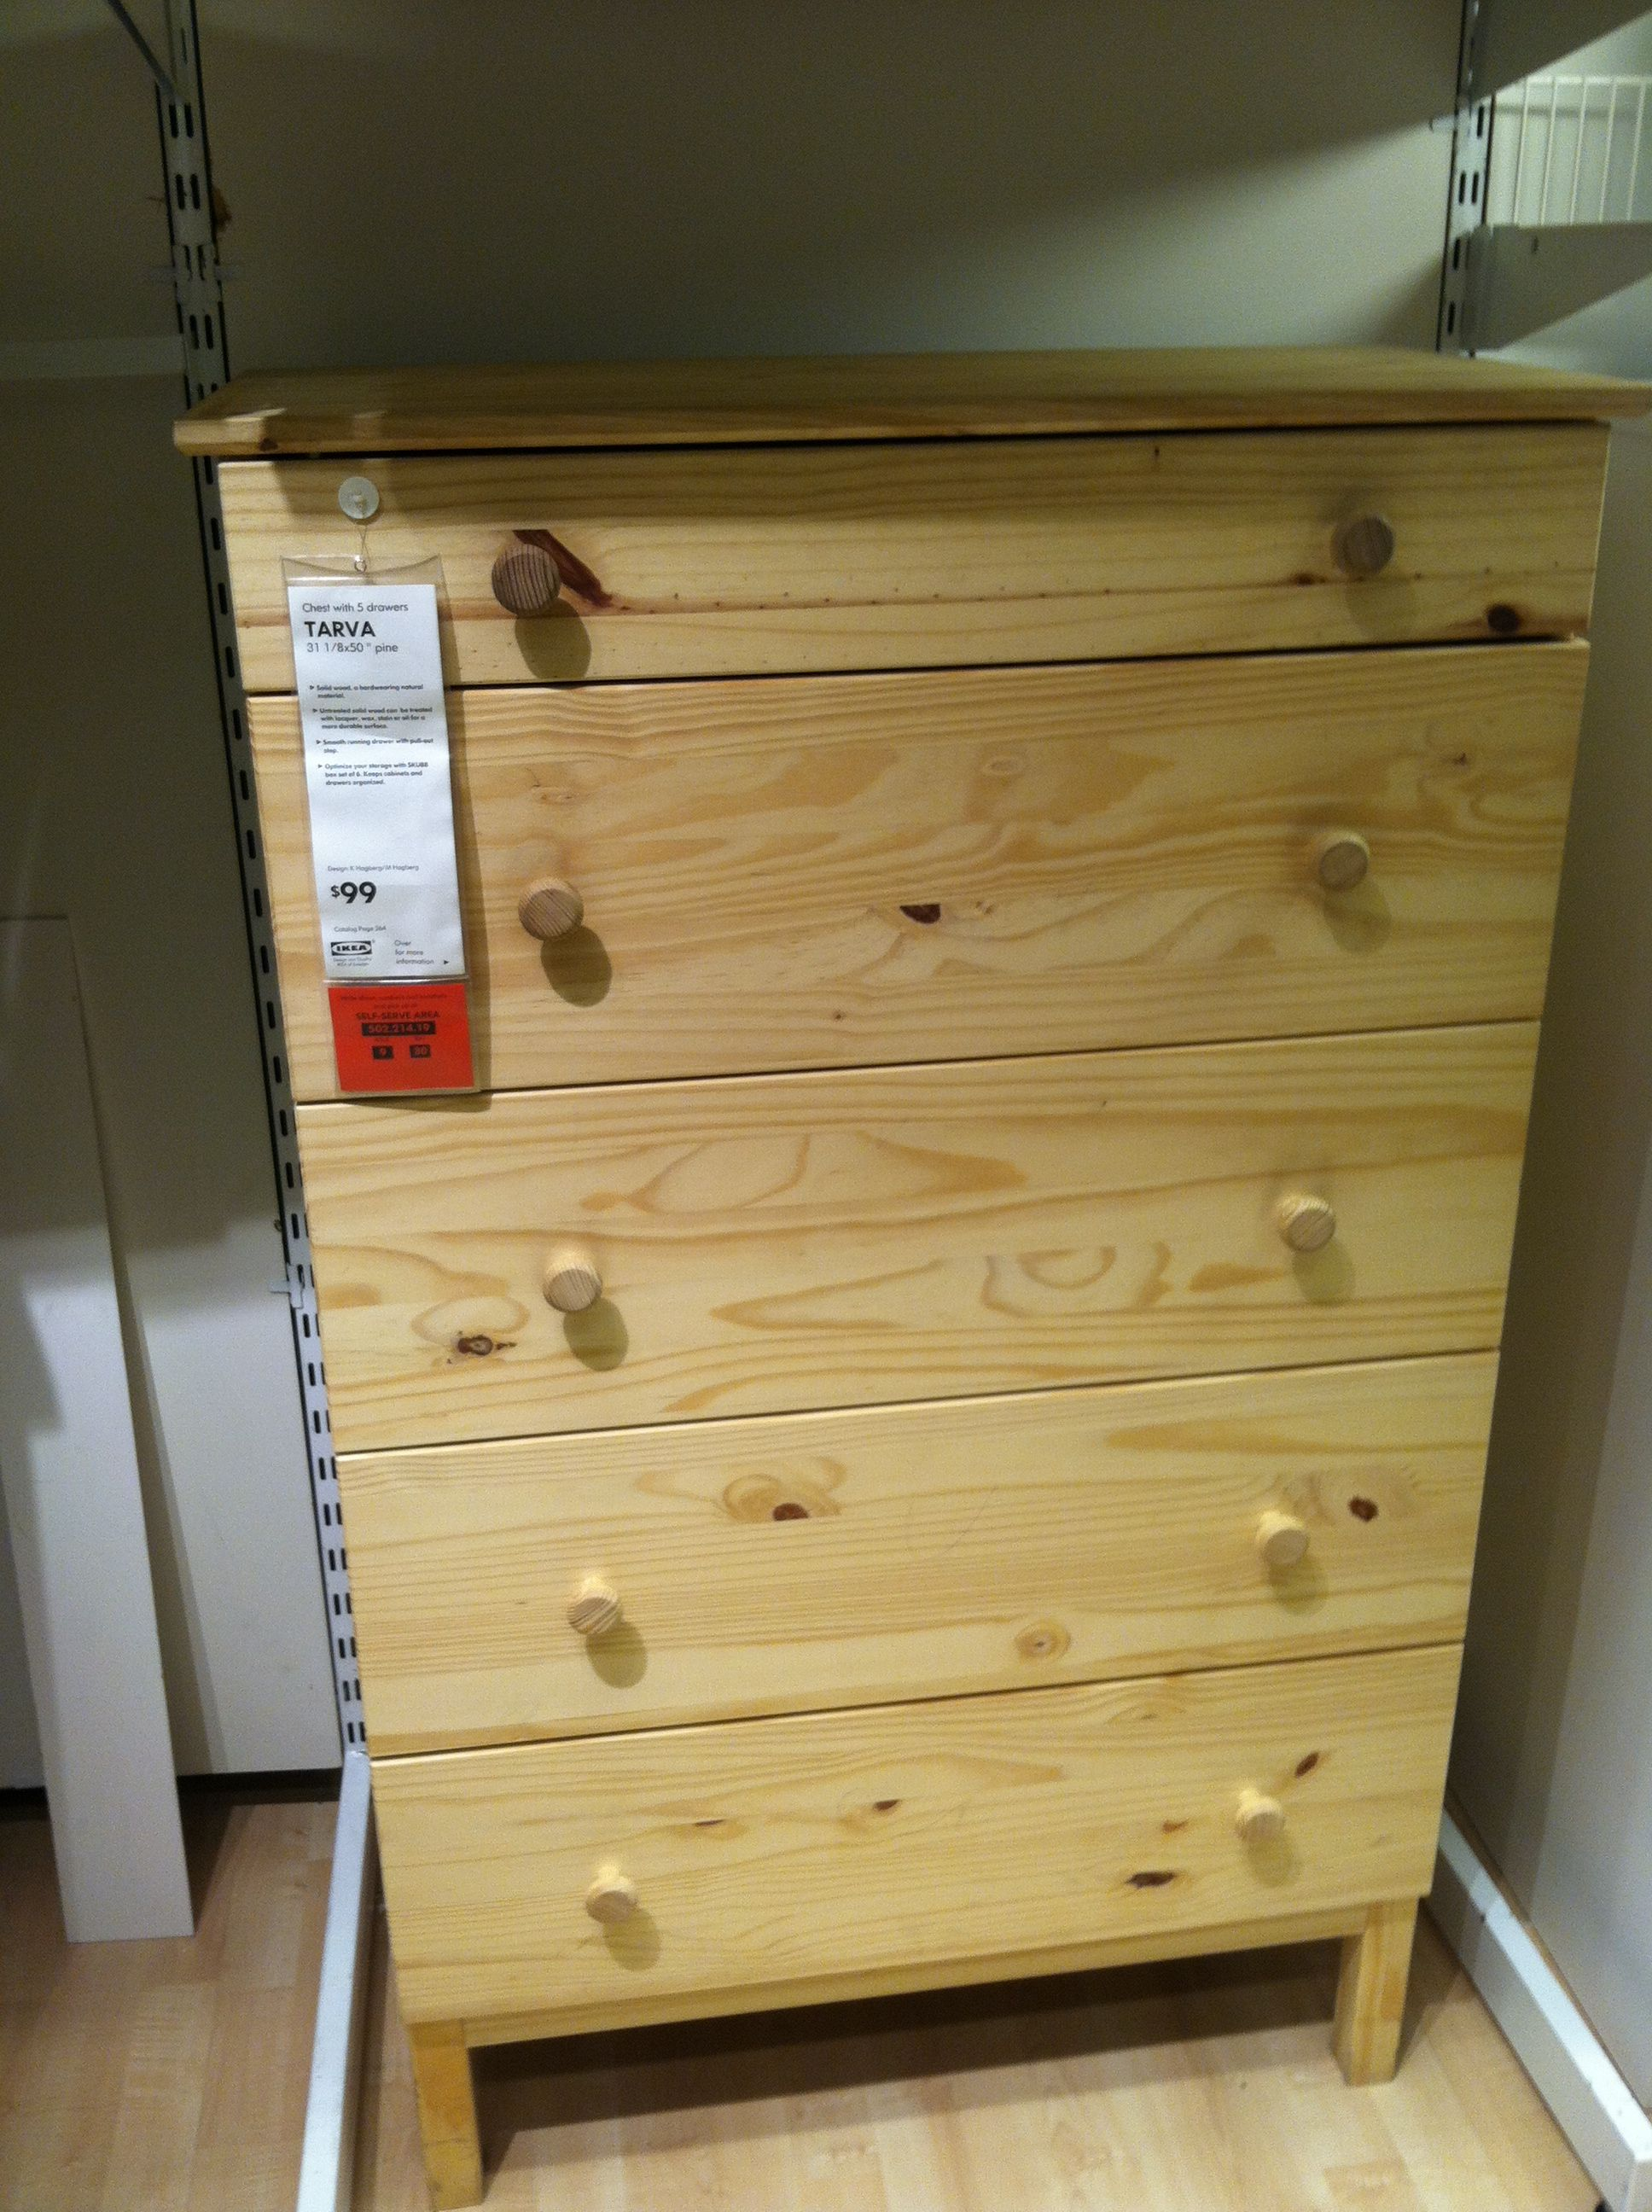 Tarva dresser from ikea stain everything a darkish color with a